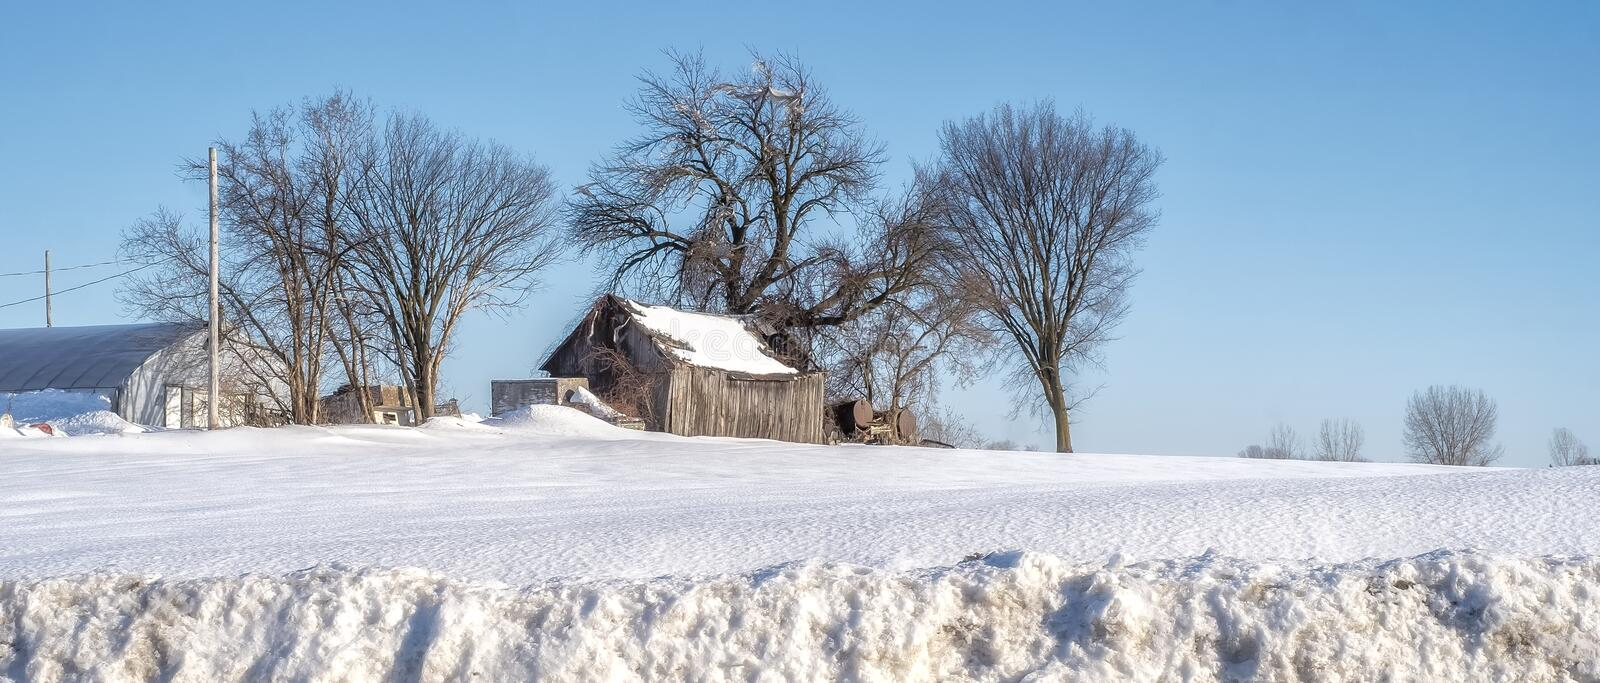 Farm scene on a winter day royalty free stock photography